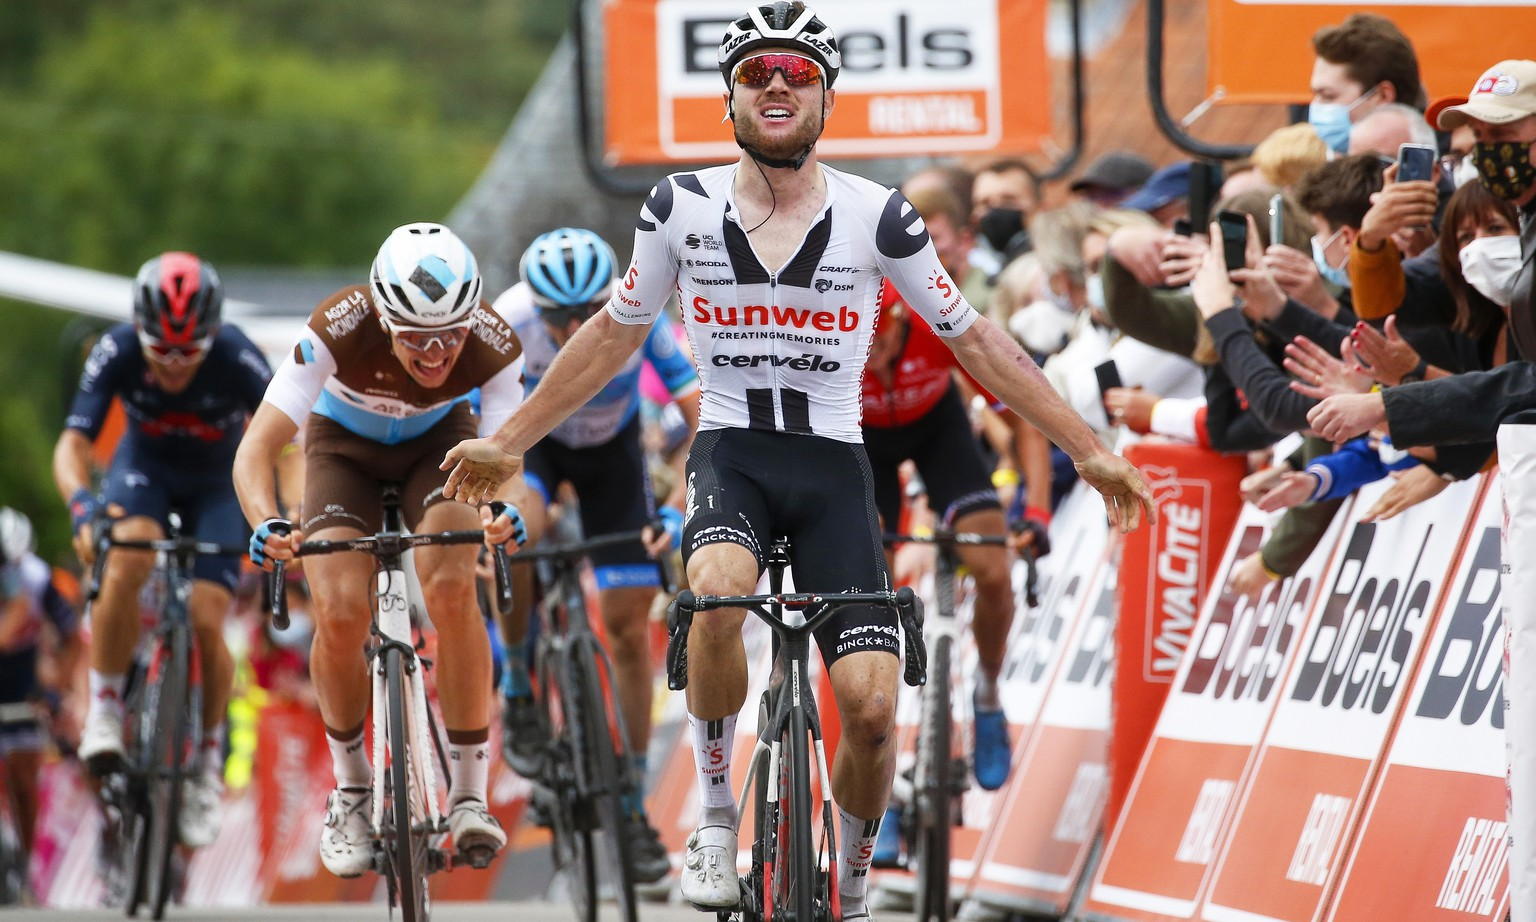 epa08708899 Swiss rider Marc Hirschi (C) of Team Sunweb celebrates  while crossing the finish line to win the 84th edition of the Fleche Wallonne one day cycling race over 202km from Herve to Huy, Belgium, 30 September 2020.  EPA/JULIEN WARNAND